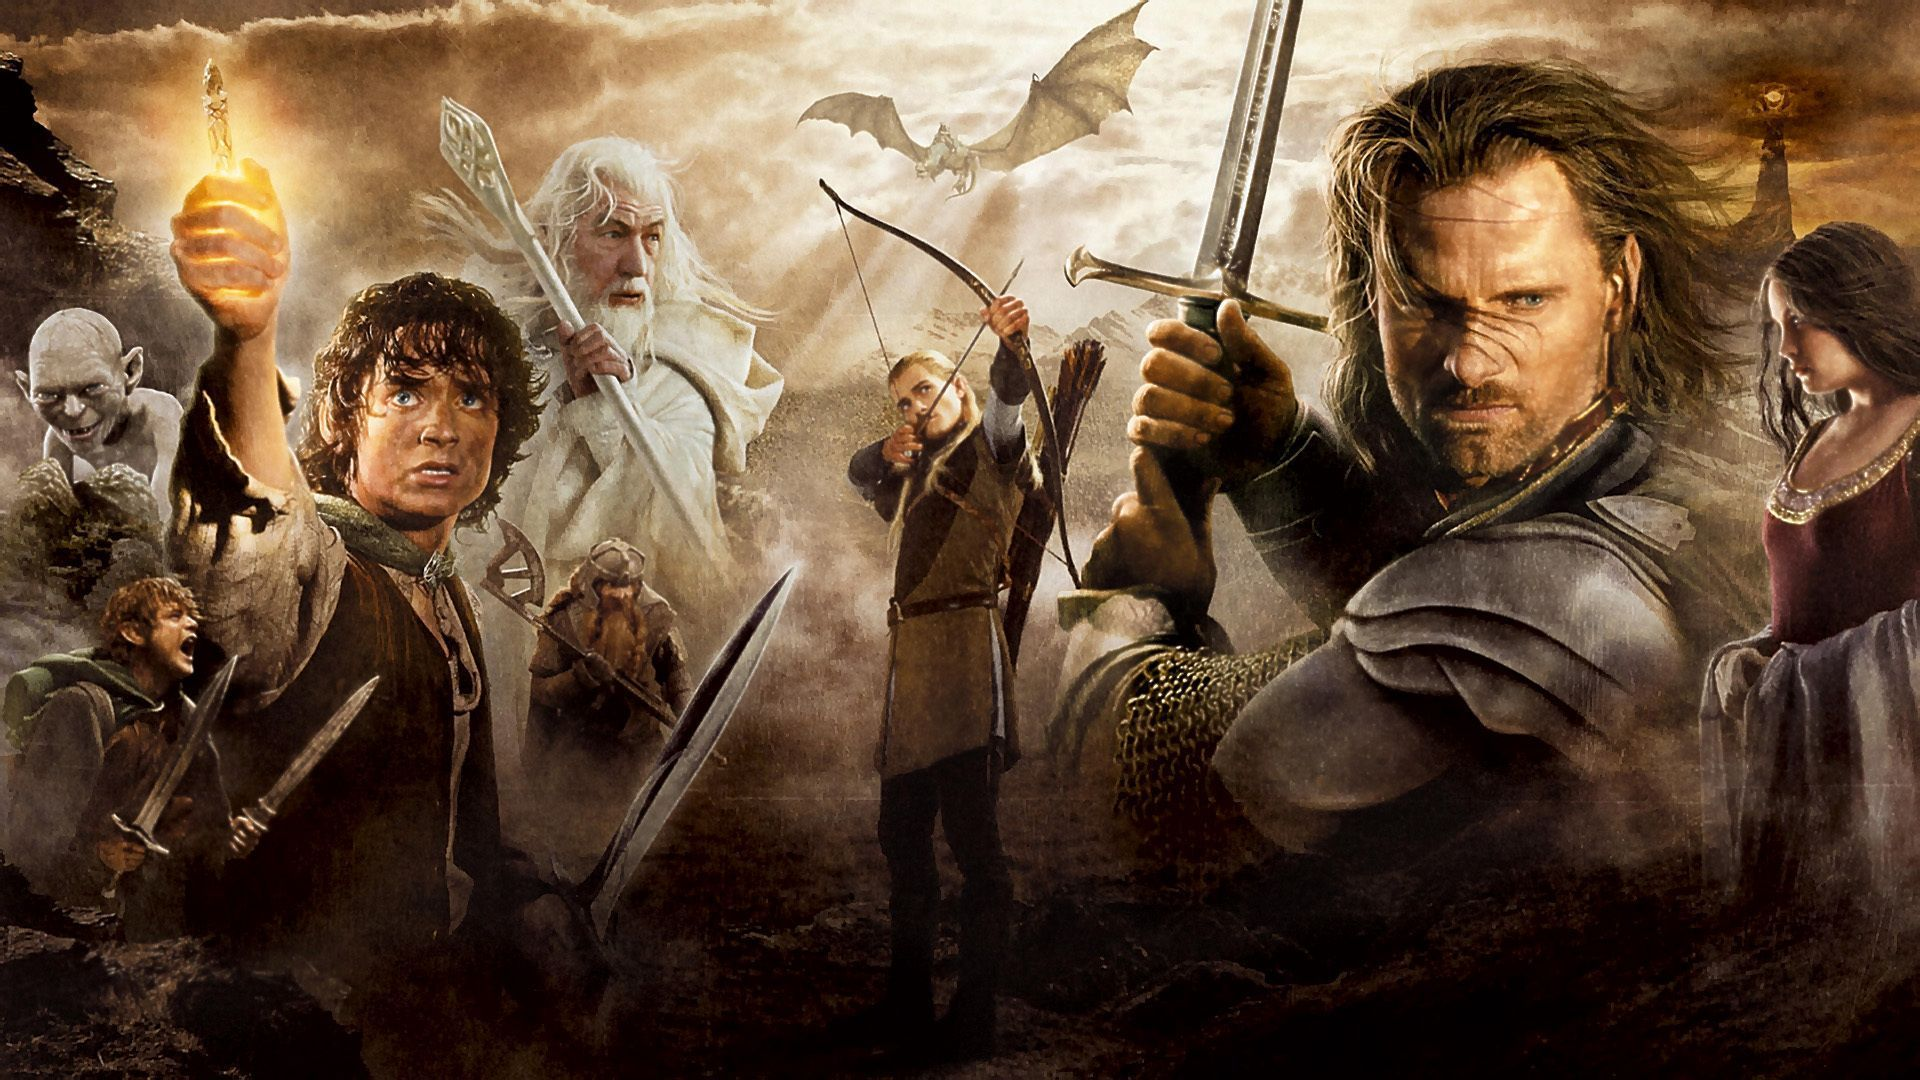 Lotr Movie Wallpapers Top Free Lotr Movie Backgrounds